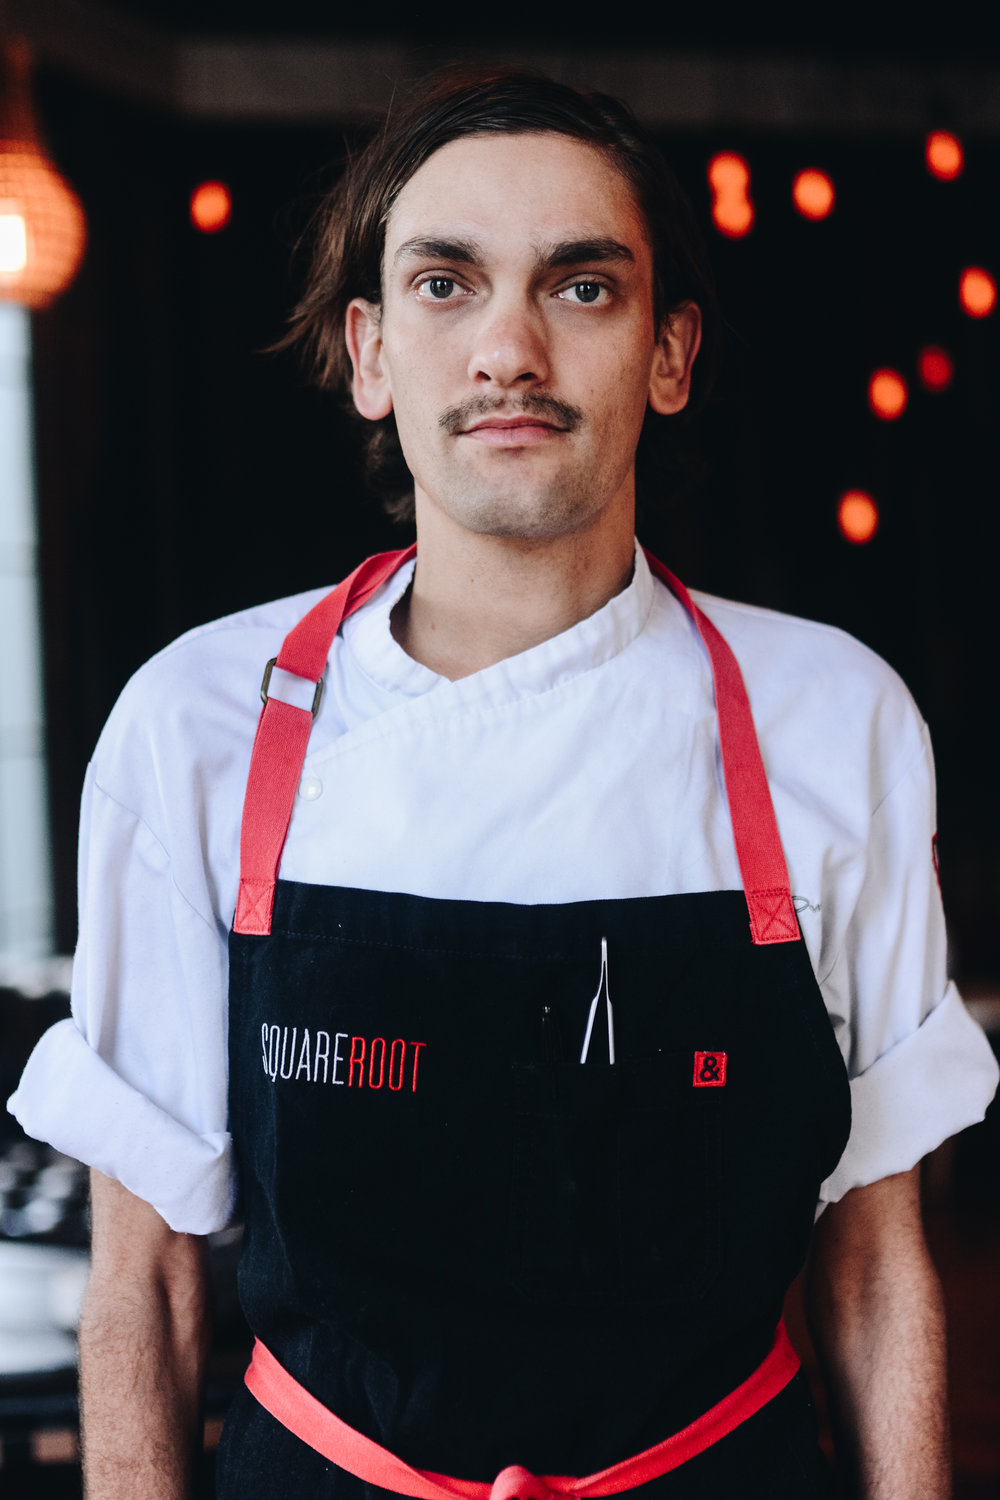 Ryan Duncan - Ryan Duncan is a Chef de Partie at Square Root